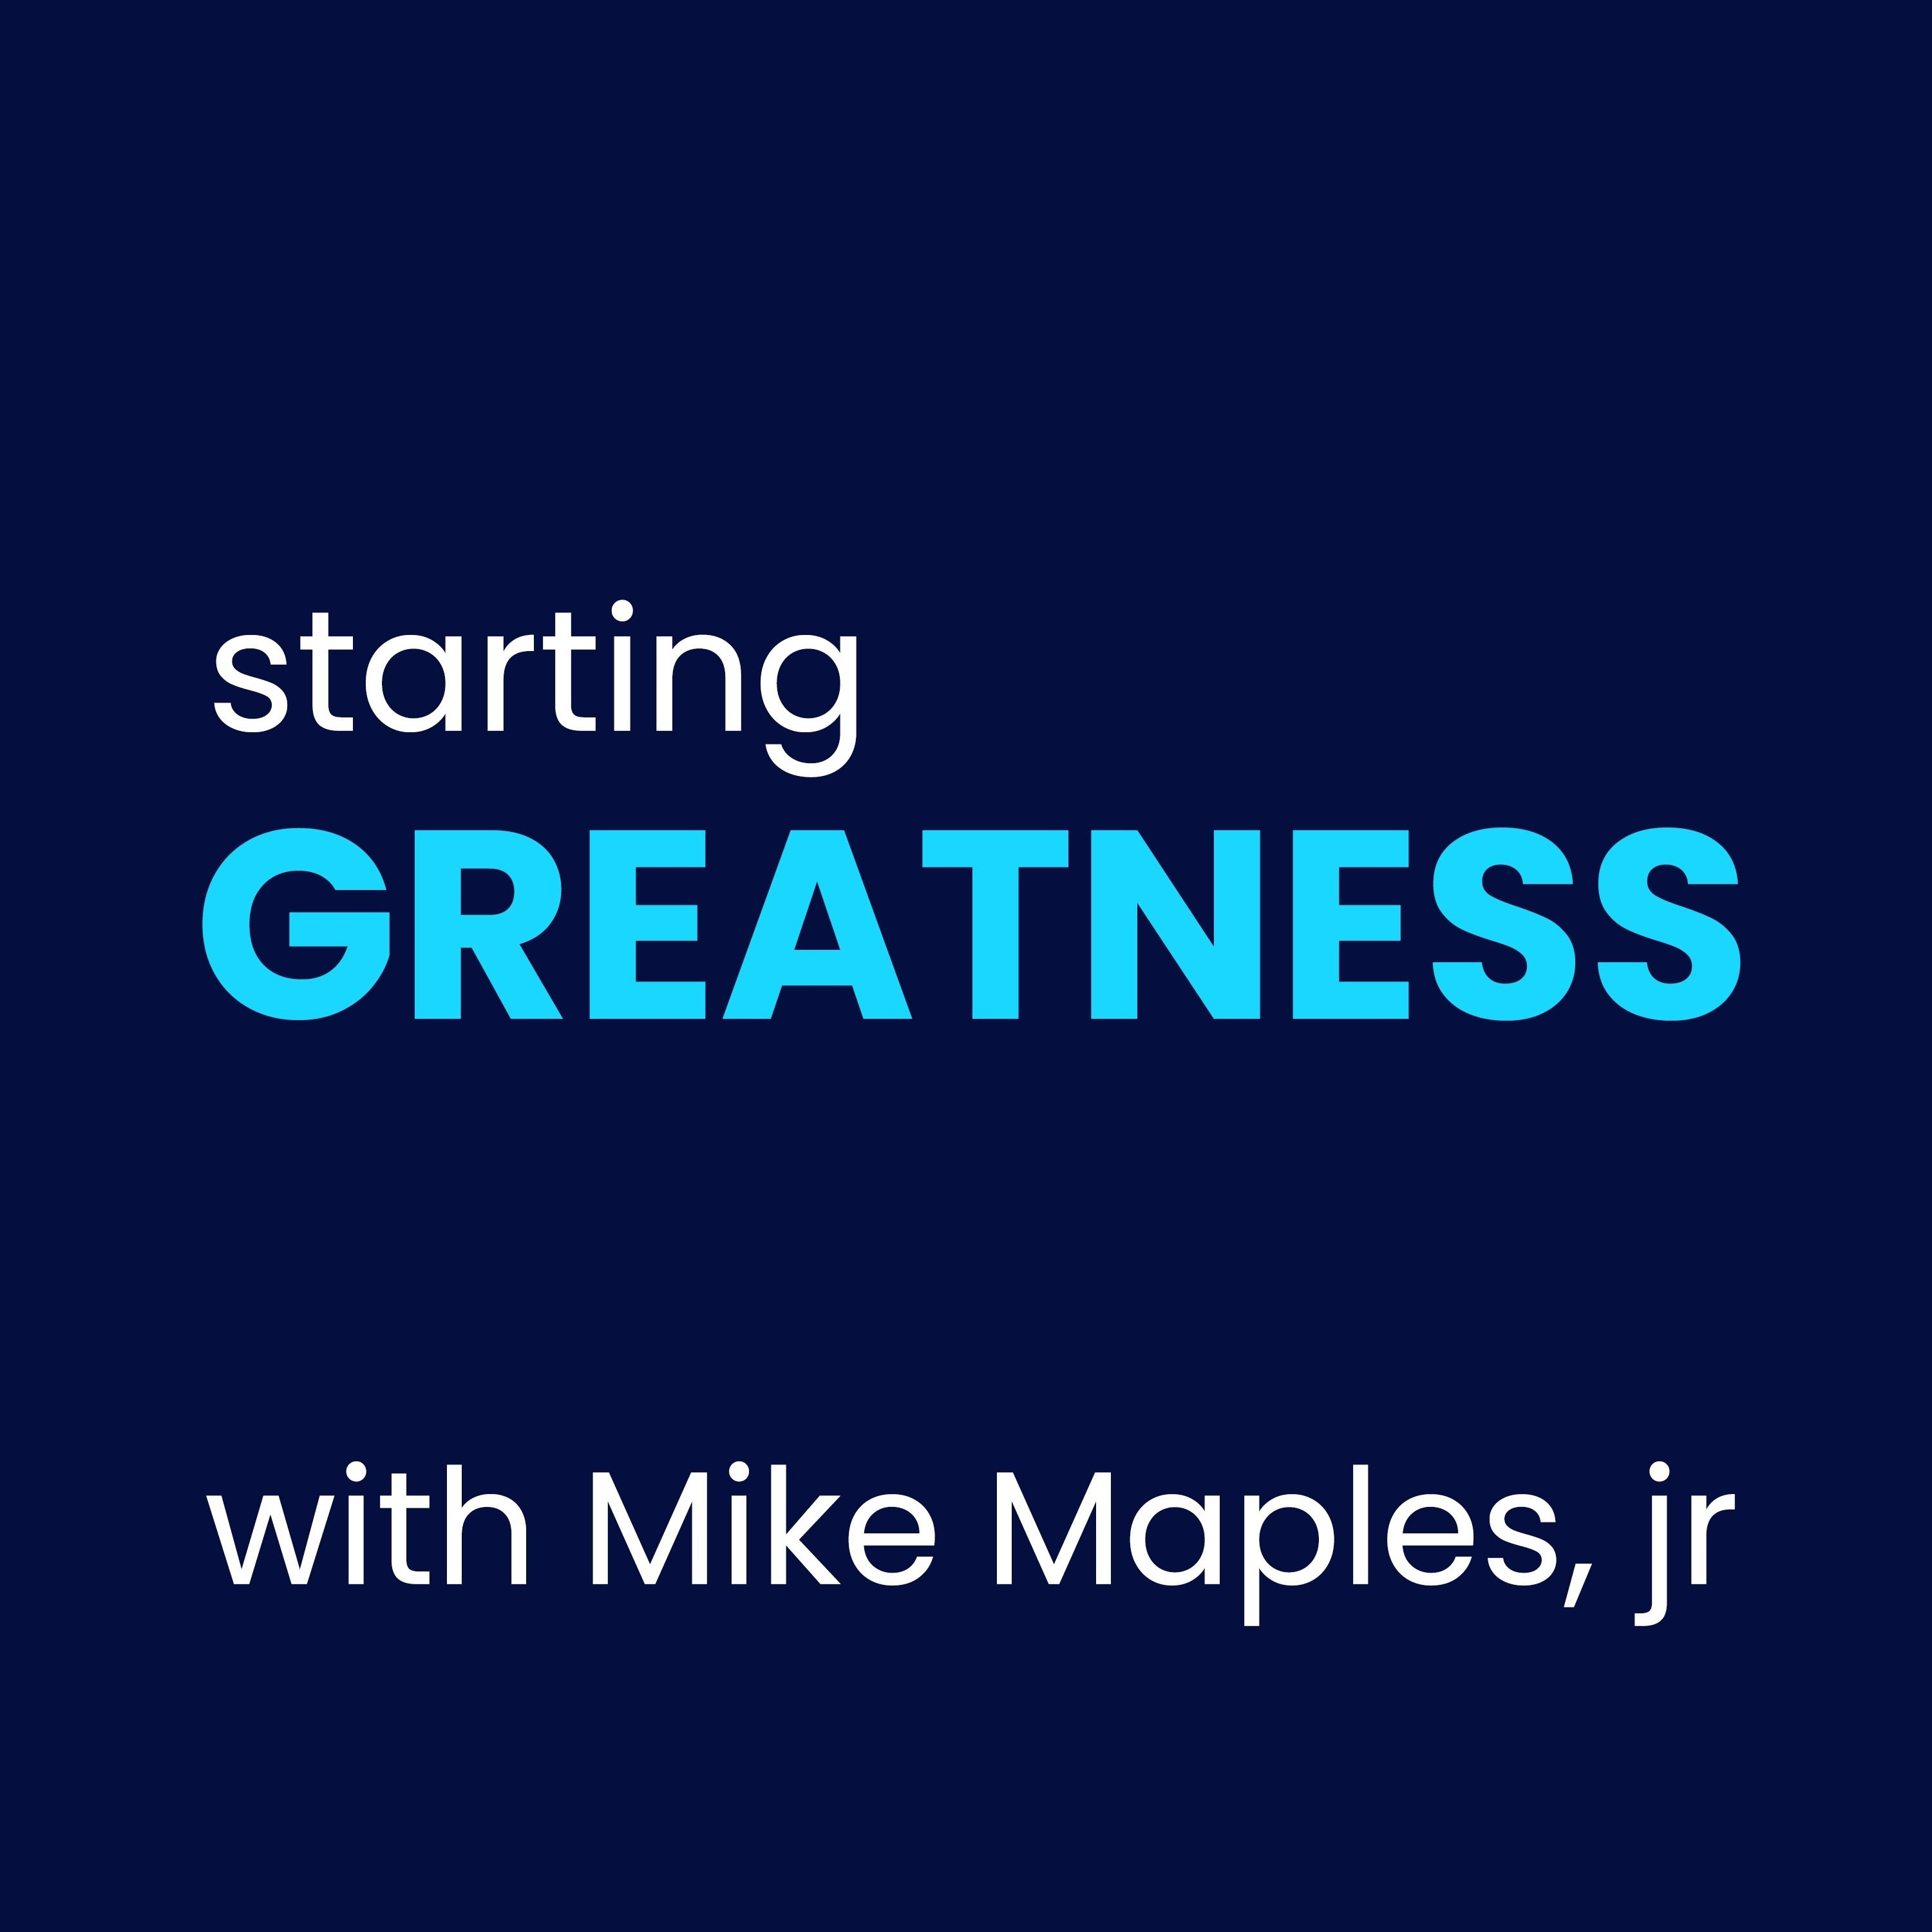 Starting Greatness